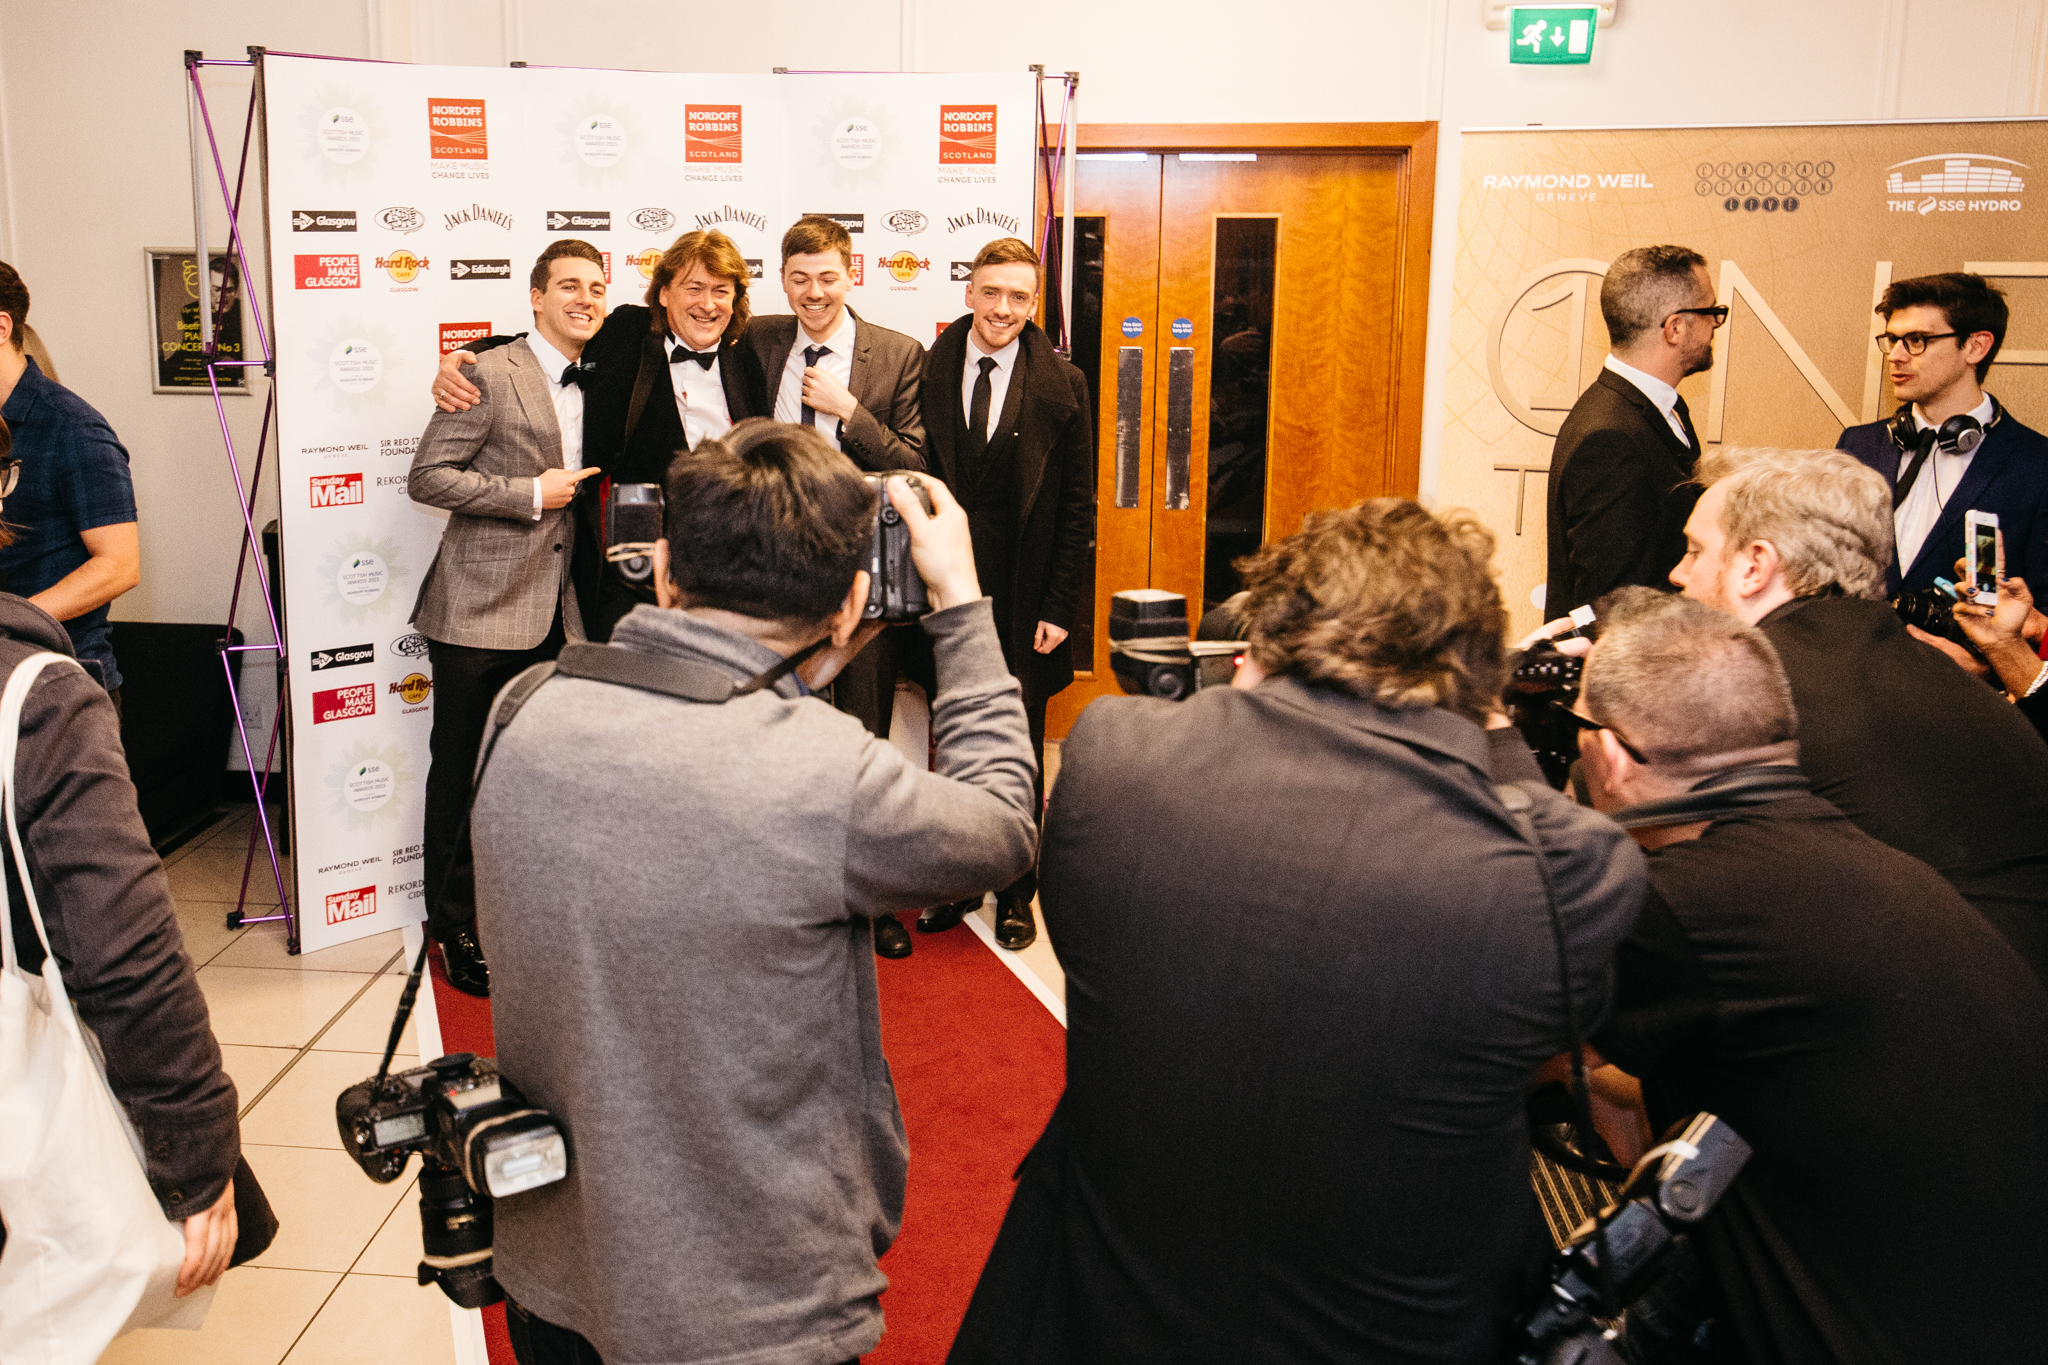 Scottish Music Awards - Creating a nationwide press campaign for the Scottish Music Awards in order to raise funds for music therapy charity Nordoff Robbins Scotland, helping take the annual event to become a major fixture on the annual live music industry calendar over 10 years.